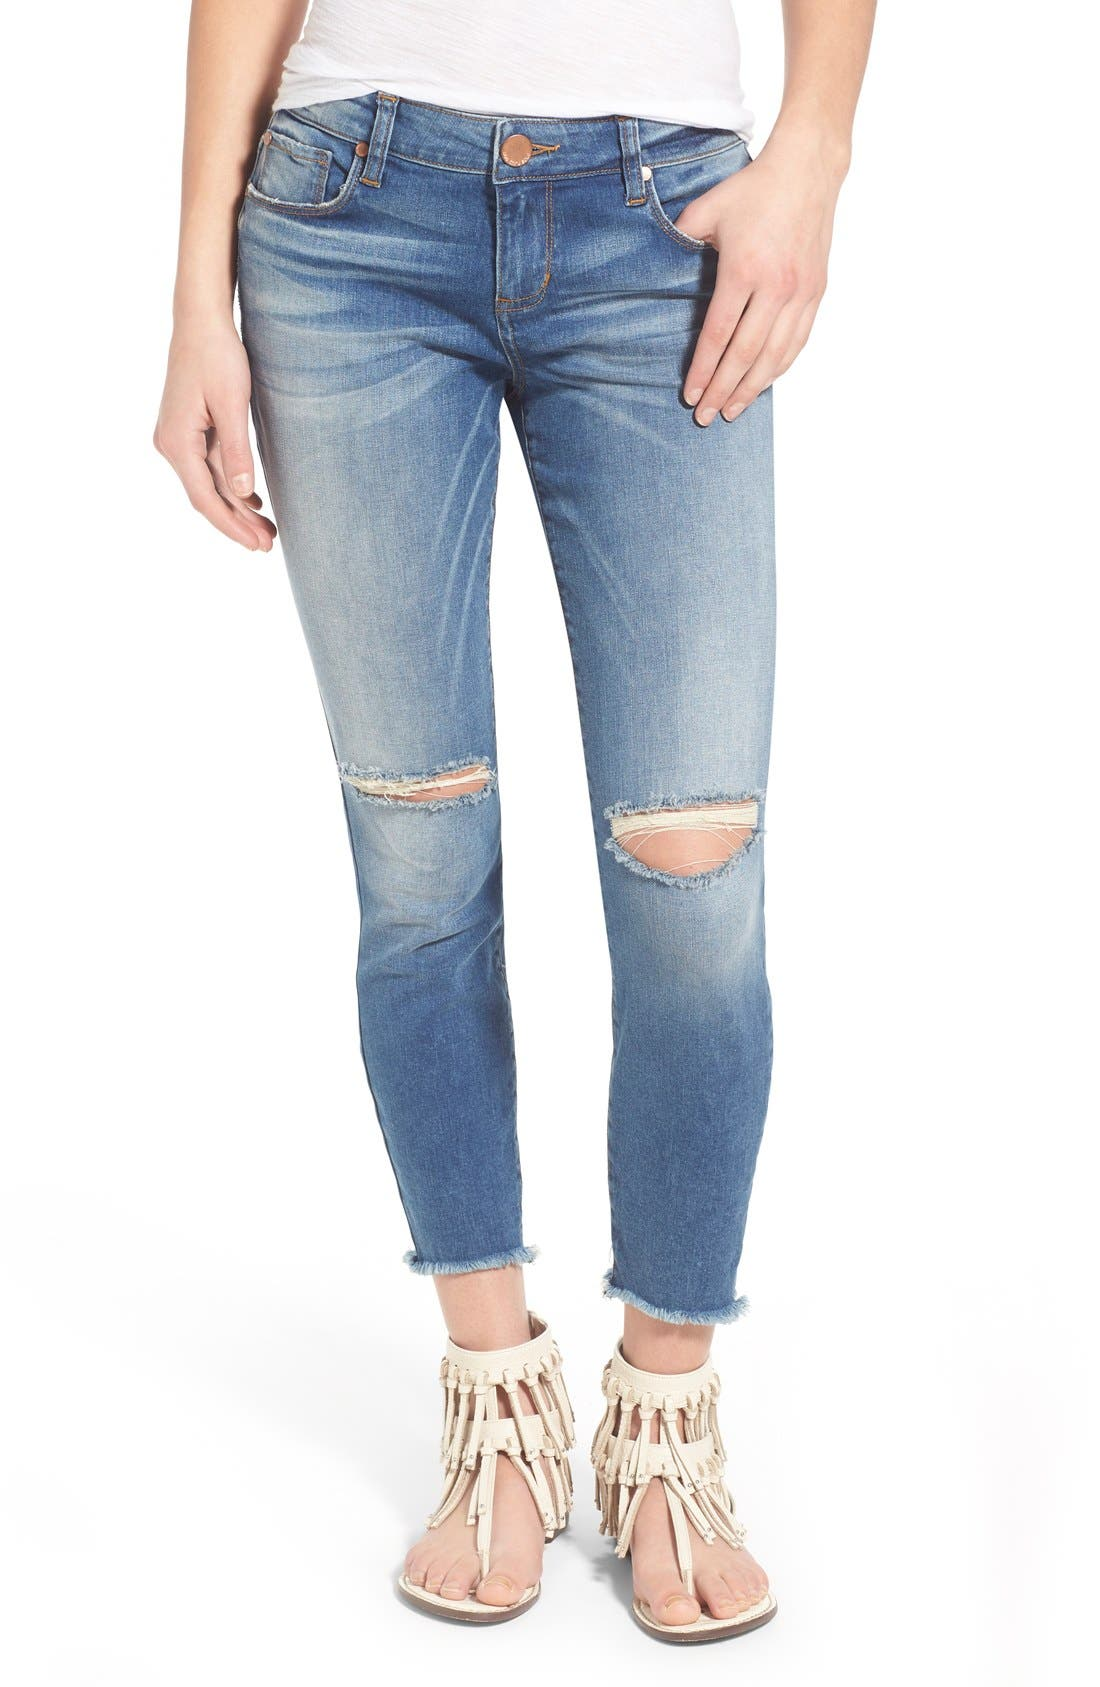 Alternate Image 1 Selected - STS Blue Crop Raw Hem Skinny Jeans